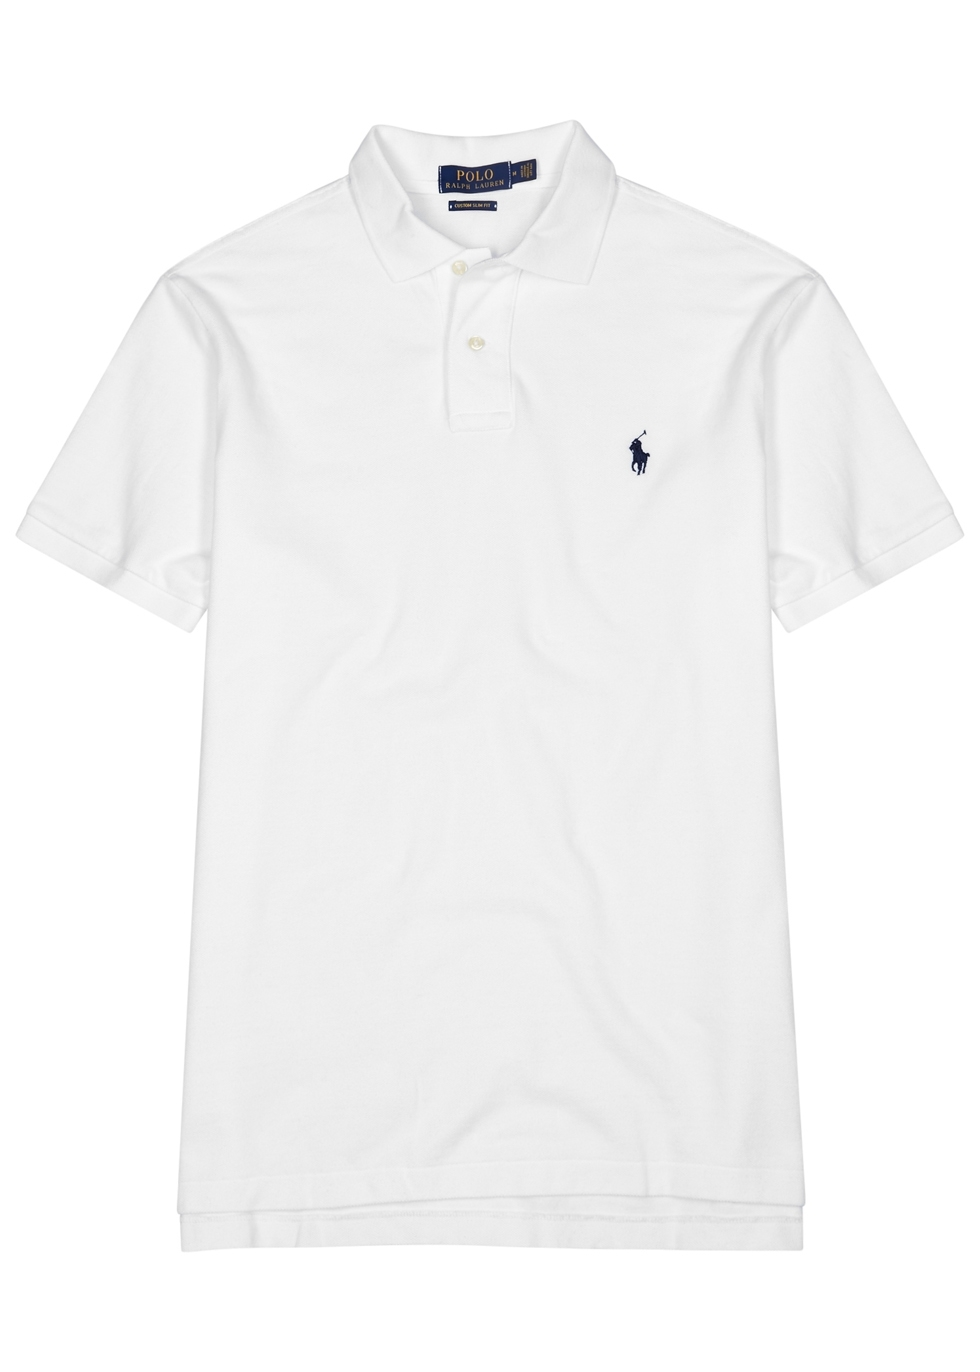 36c3aa341a41 Men s Designer Polo Shirts - Harvey Nichols